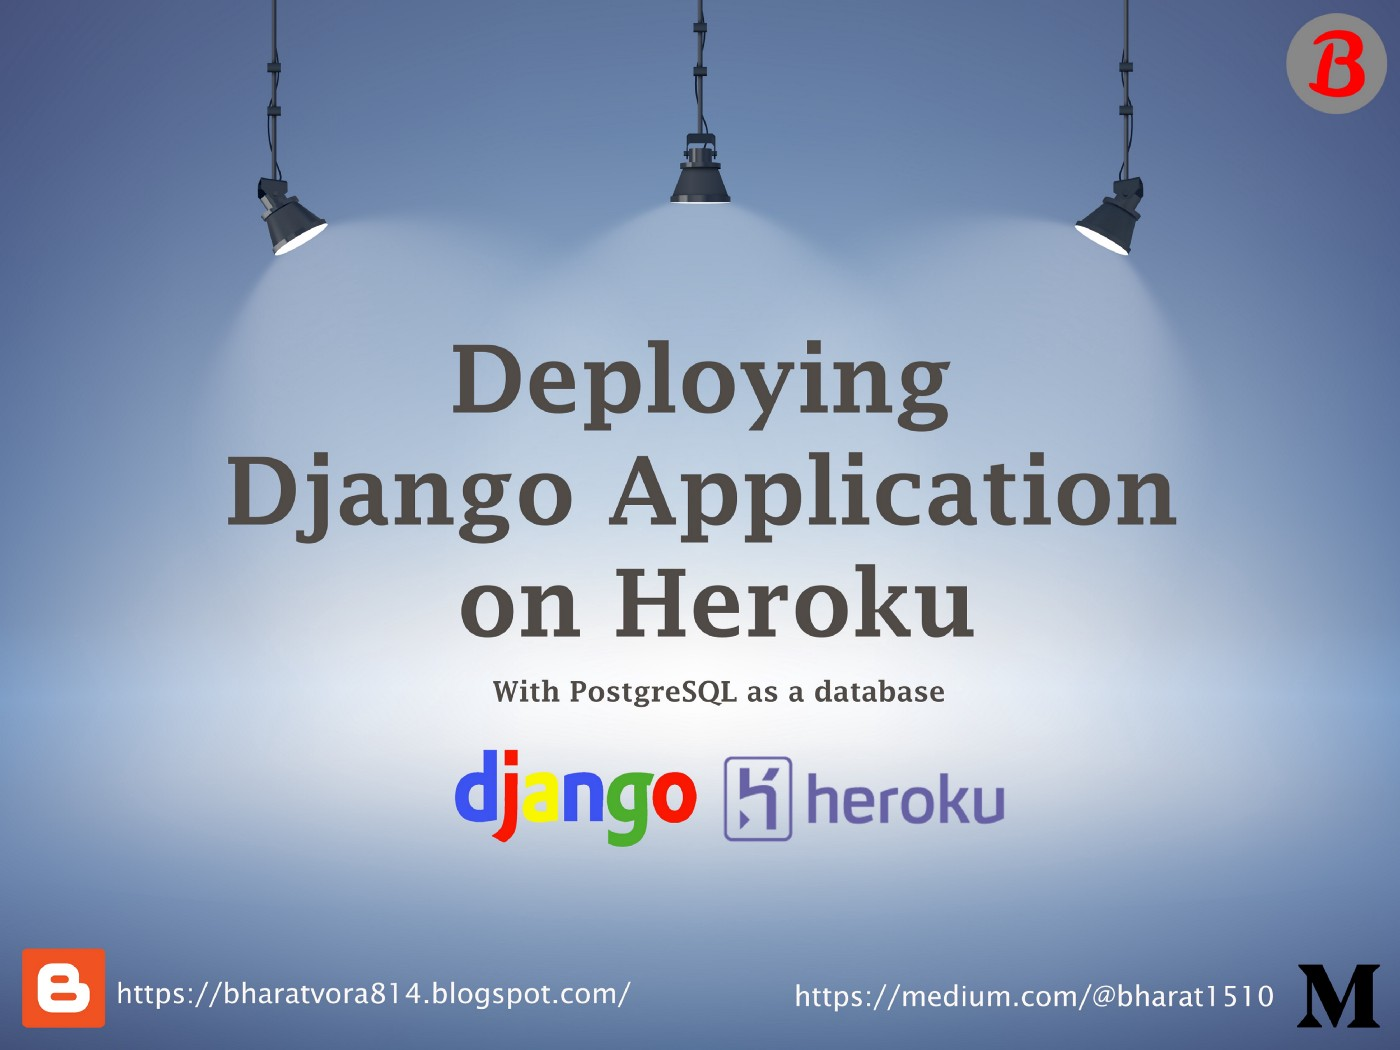 Deploy Django application on Heroku with the Postgresql database